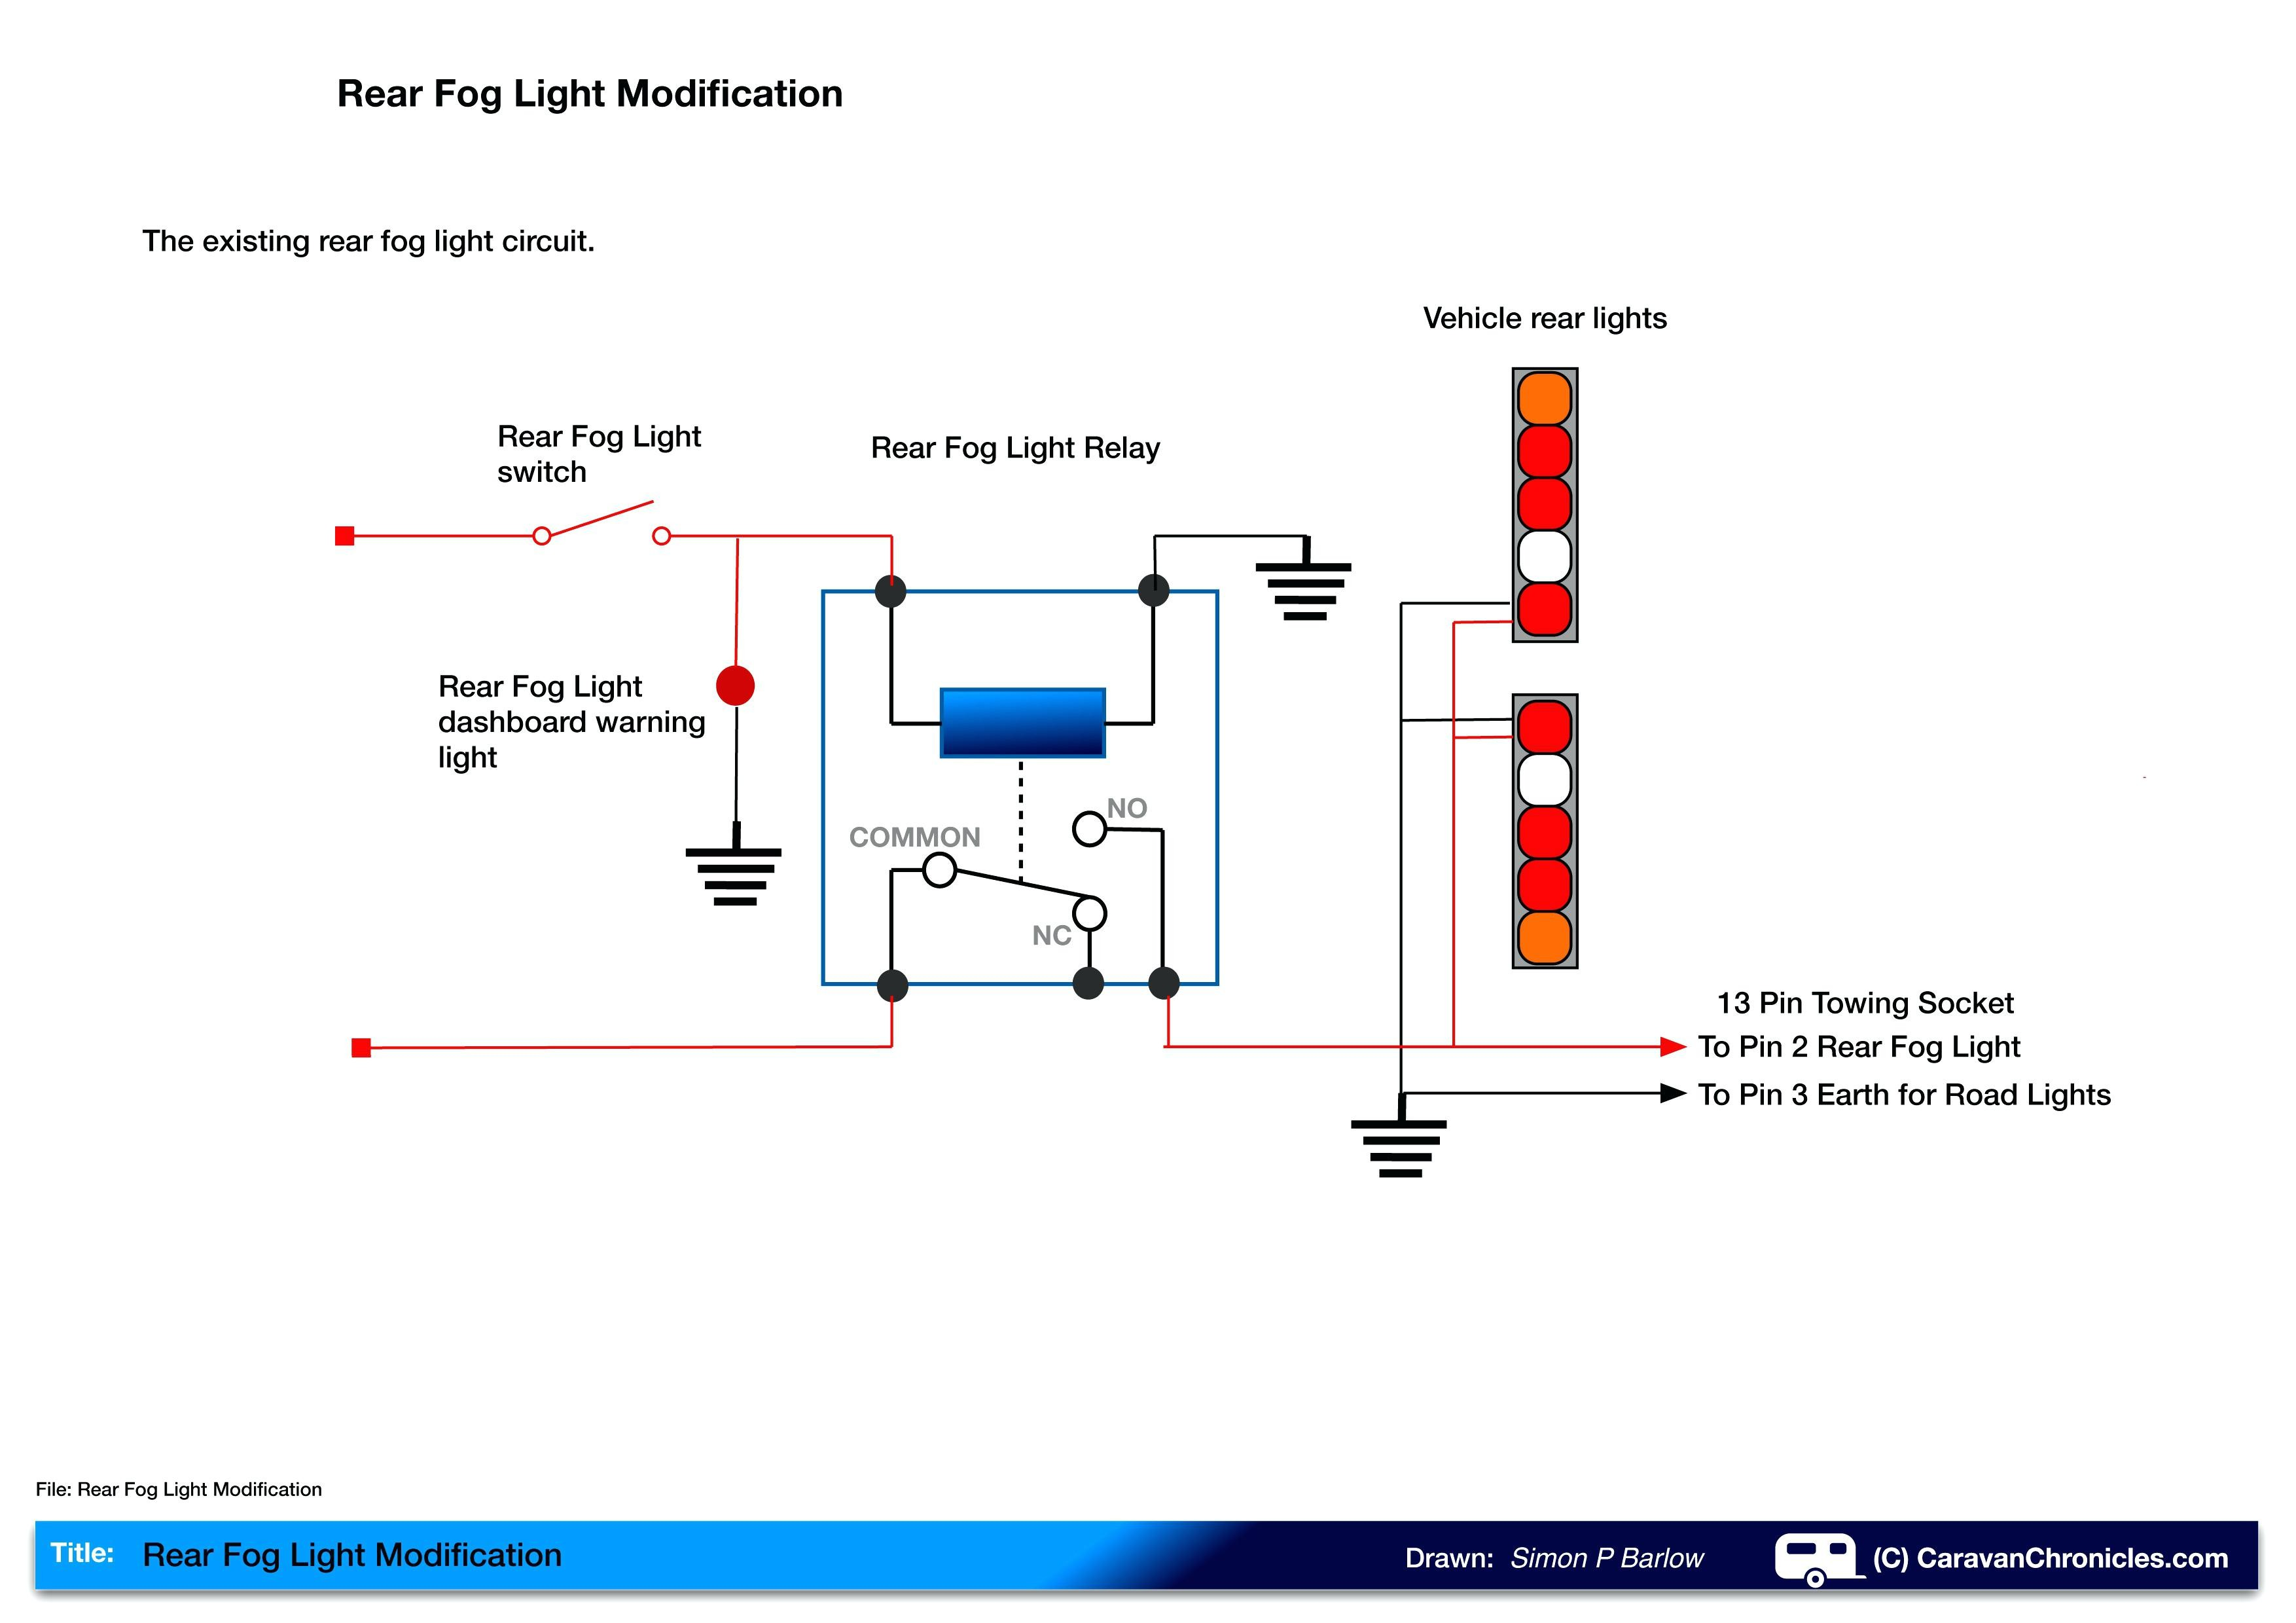 Full Size of Three Way Switch Wiring Diagram Two Lights Modify Your Rear Fog Caravan Chronicles